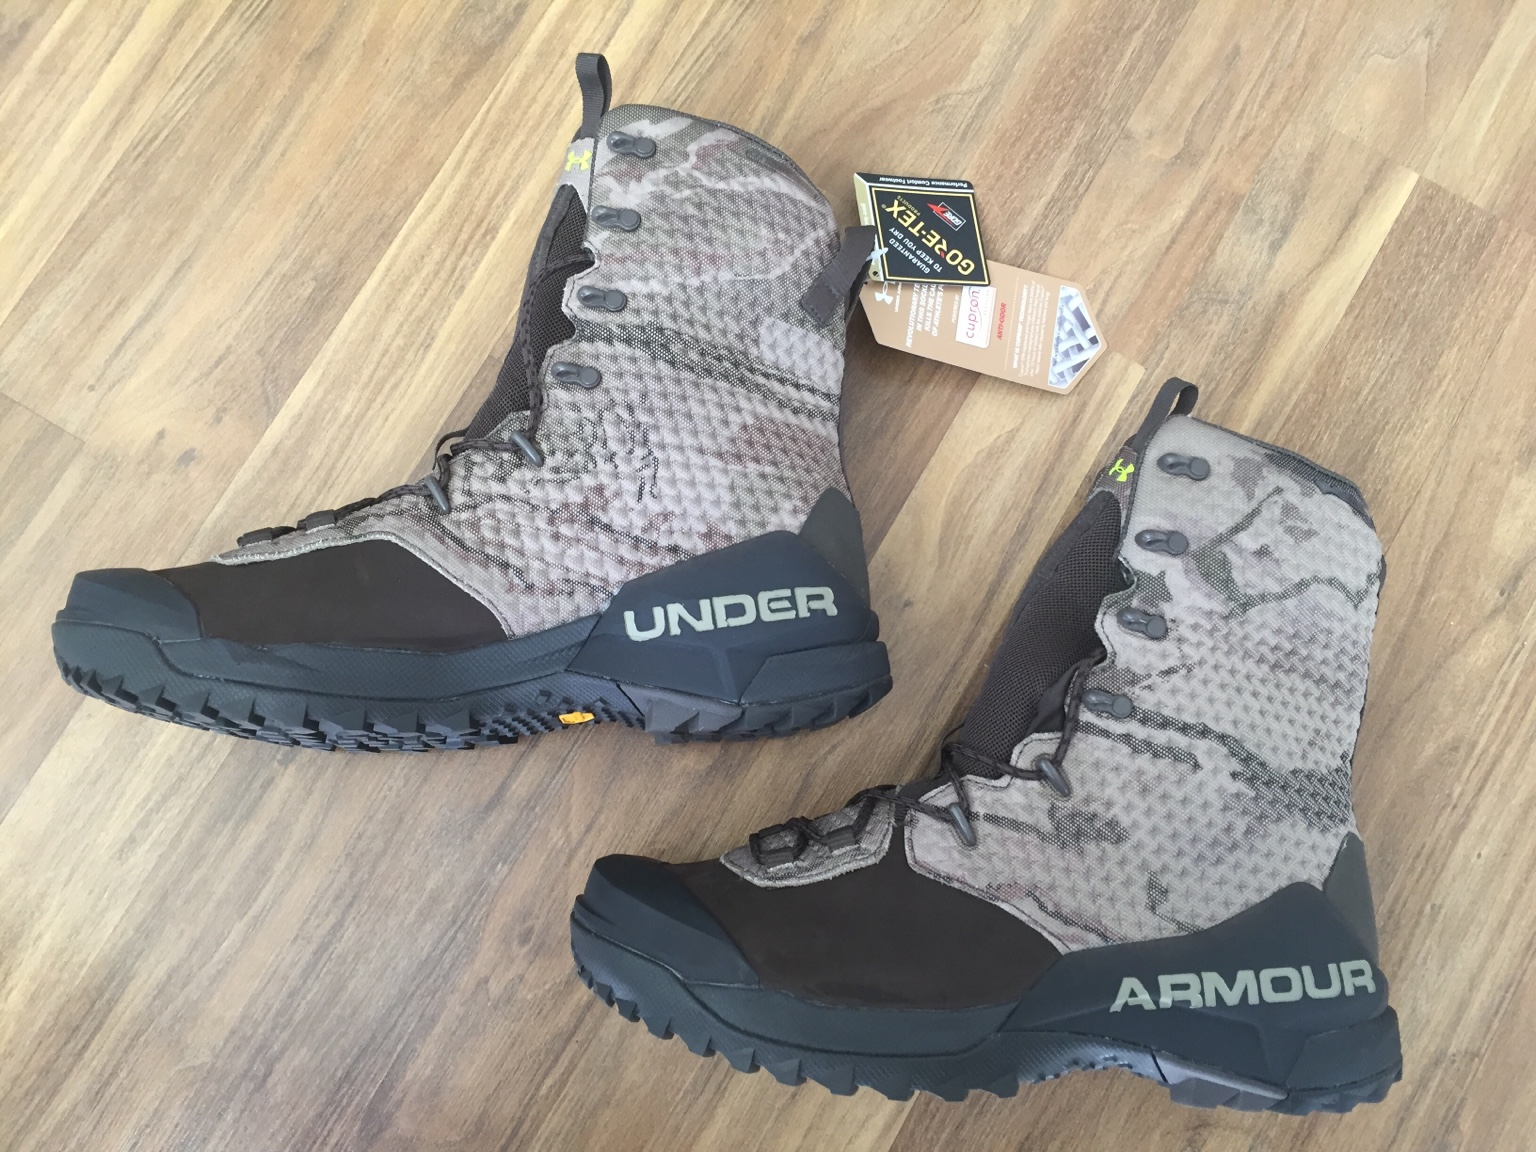 dac36202f55 WTS: Under Armour Tactical/Hunting boots - Infil Ops GORE-TEX ...